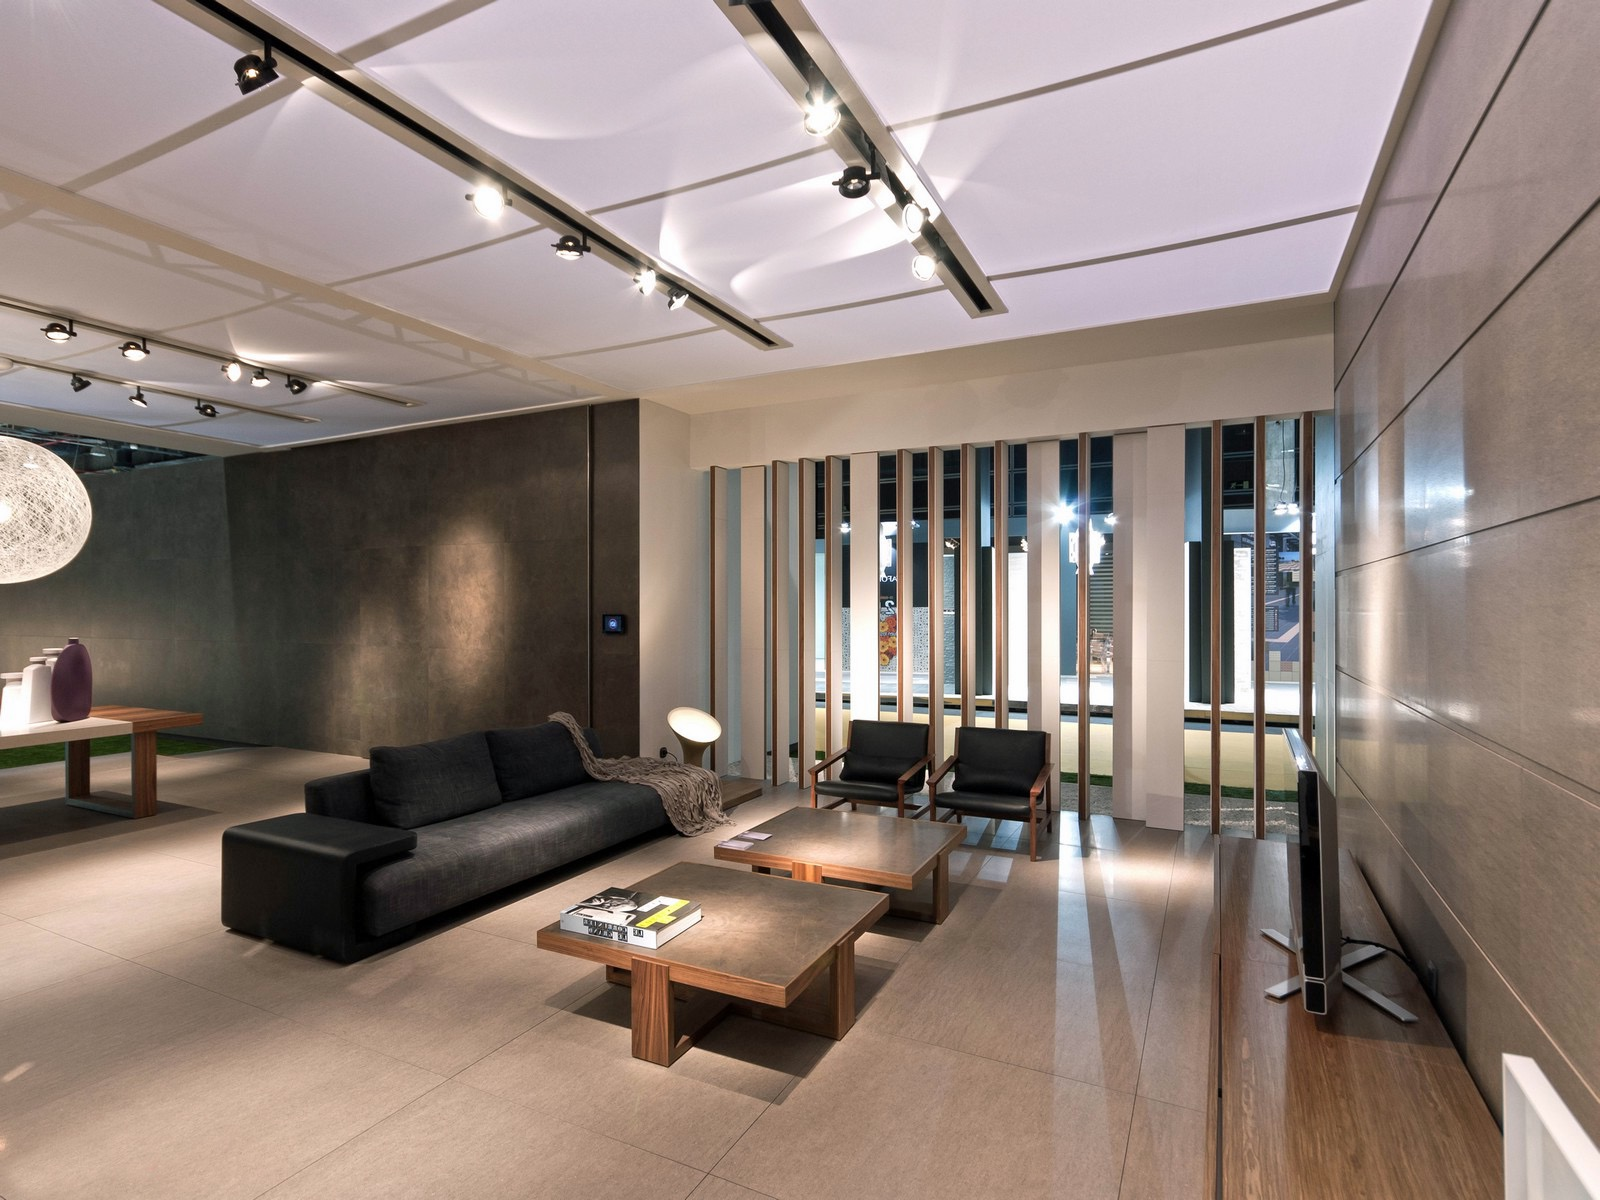 Modern Living Room With Travertine Flooring (Image 5 of 15)